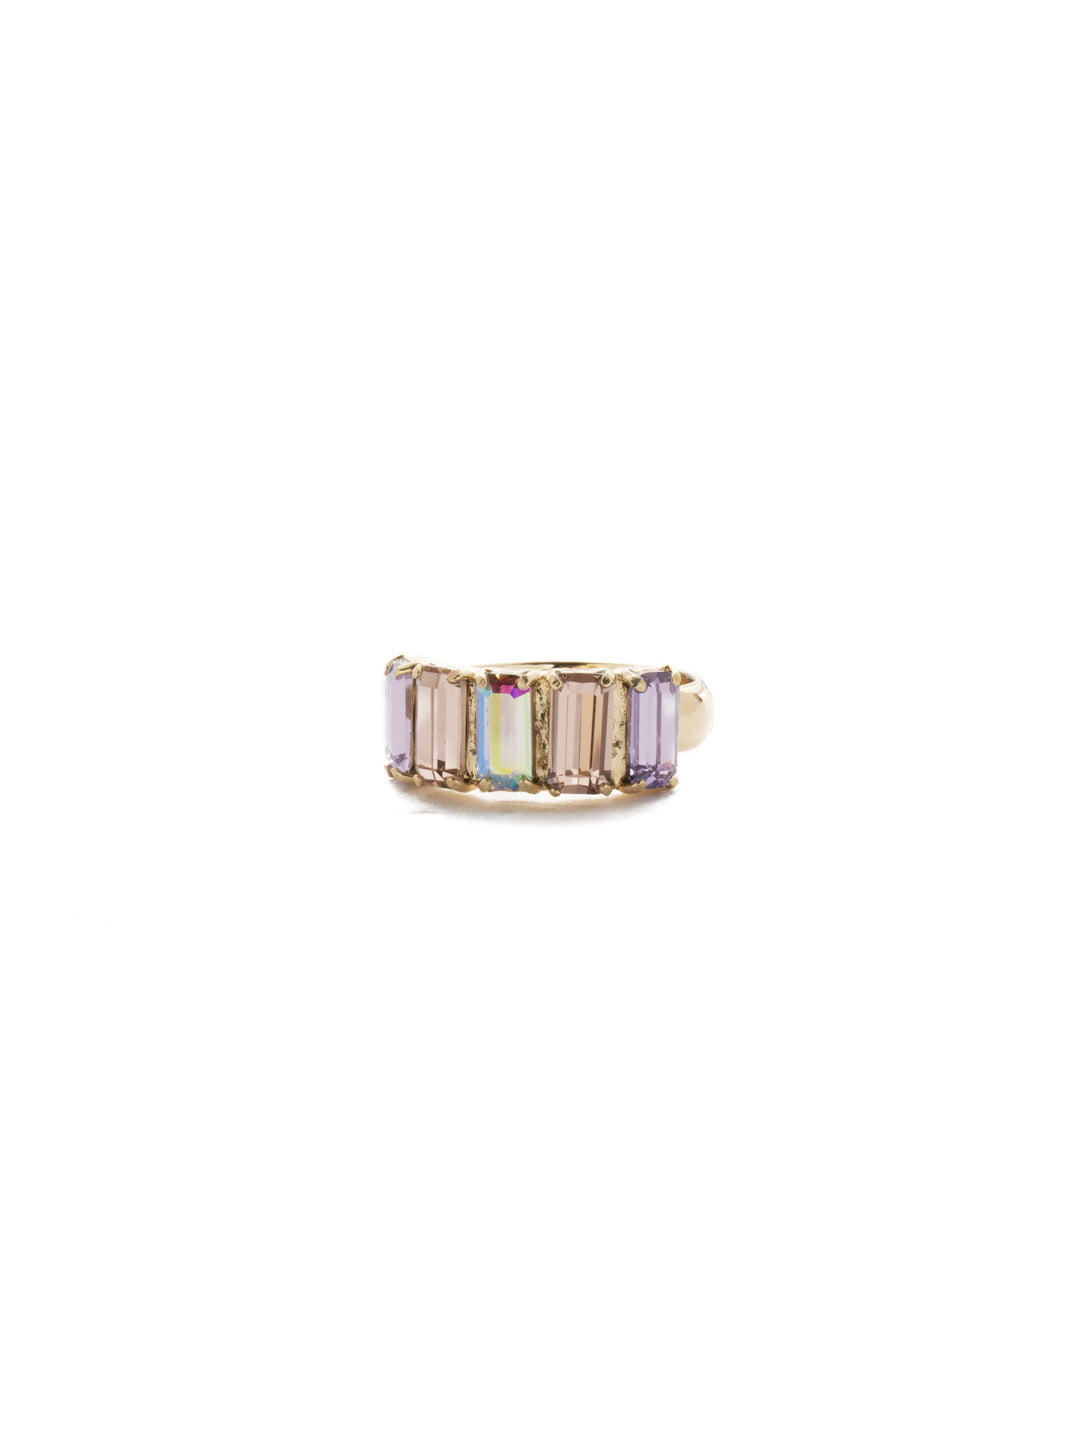 Arden Band Ring - REF29BGISS